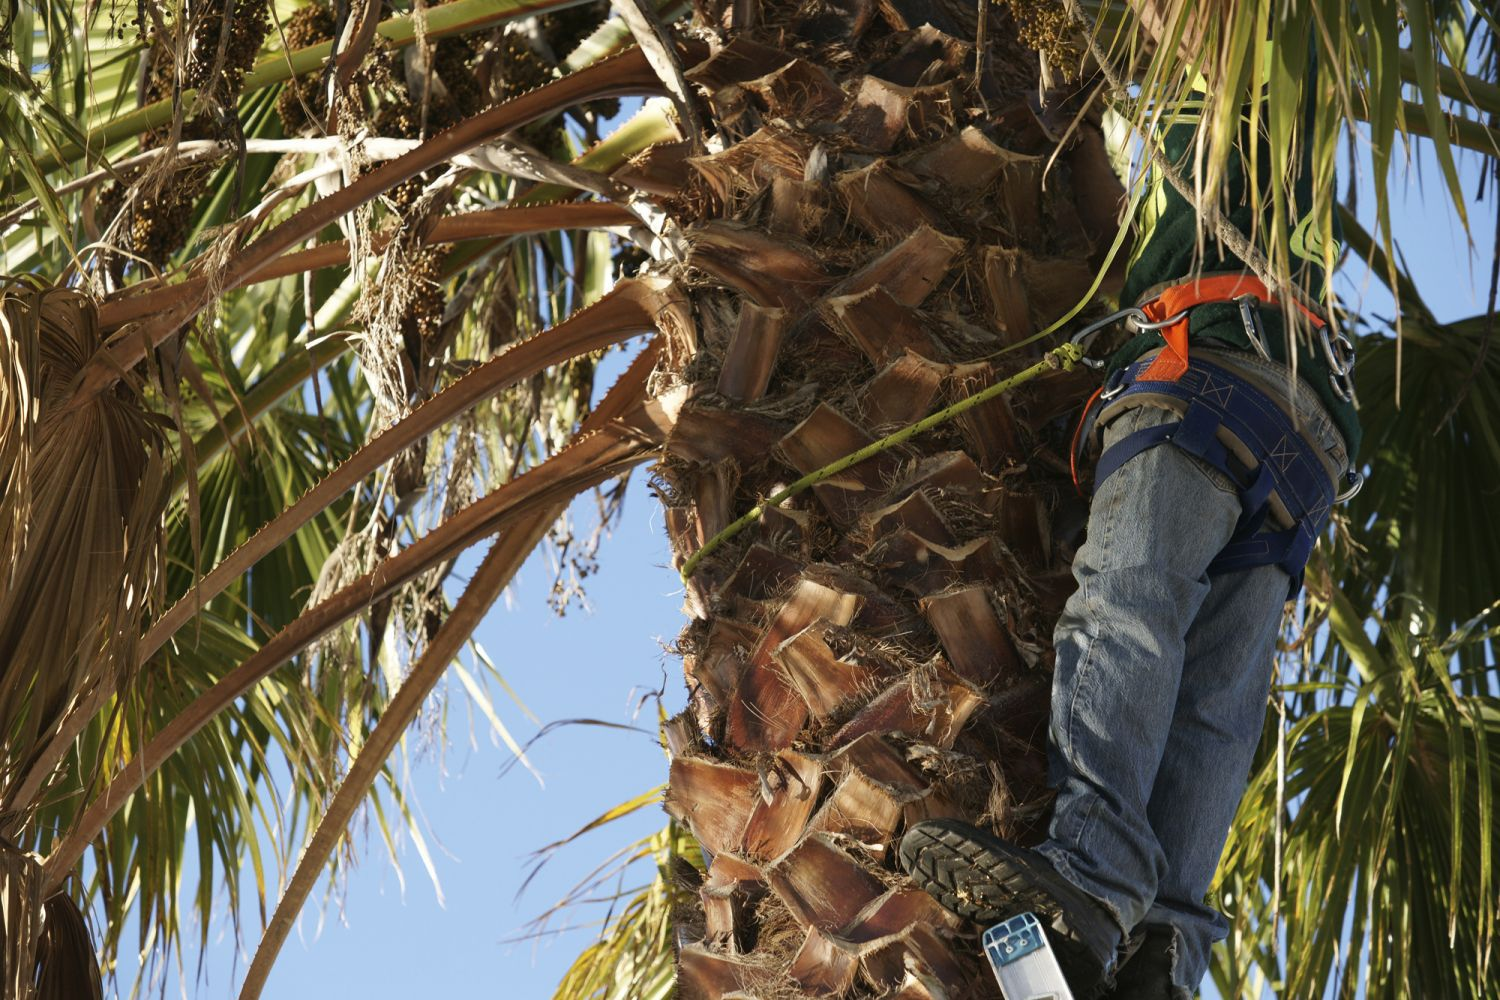 Worker is trimming trees, part of the many tree services offered in Kamuela and Kona, HI